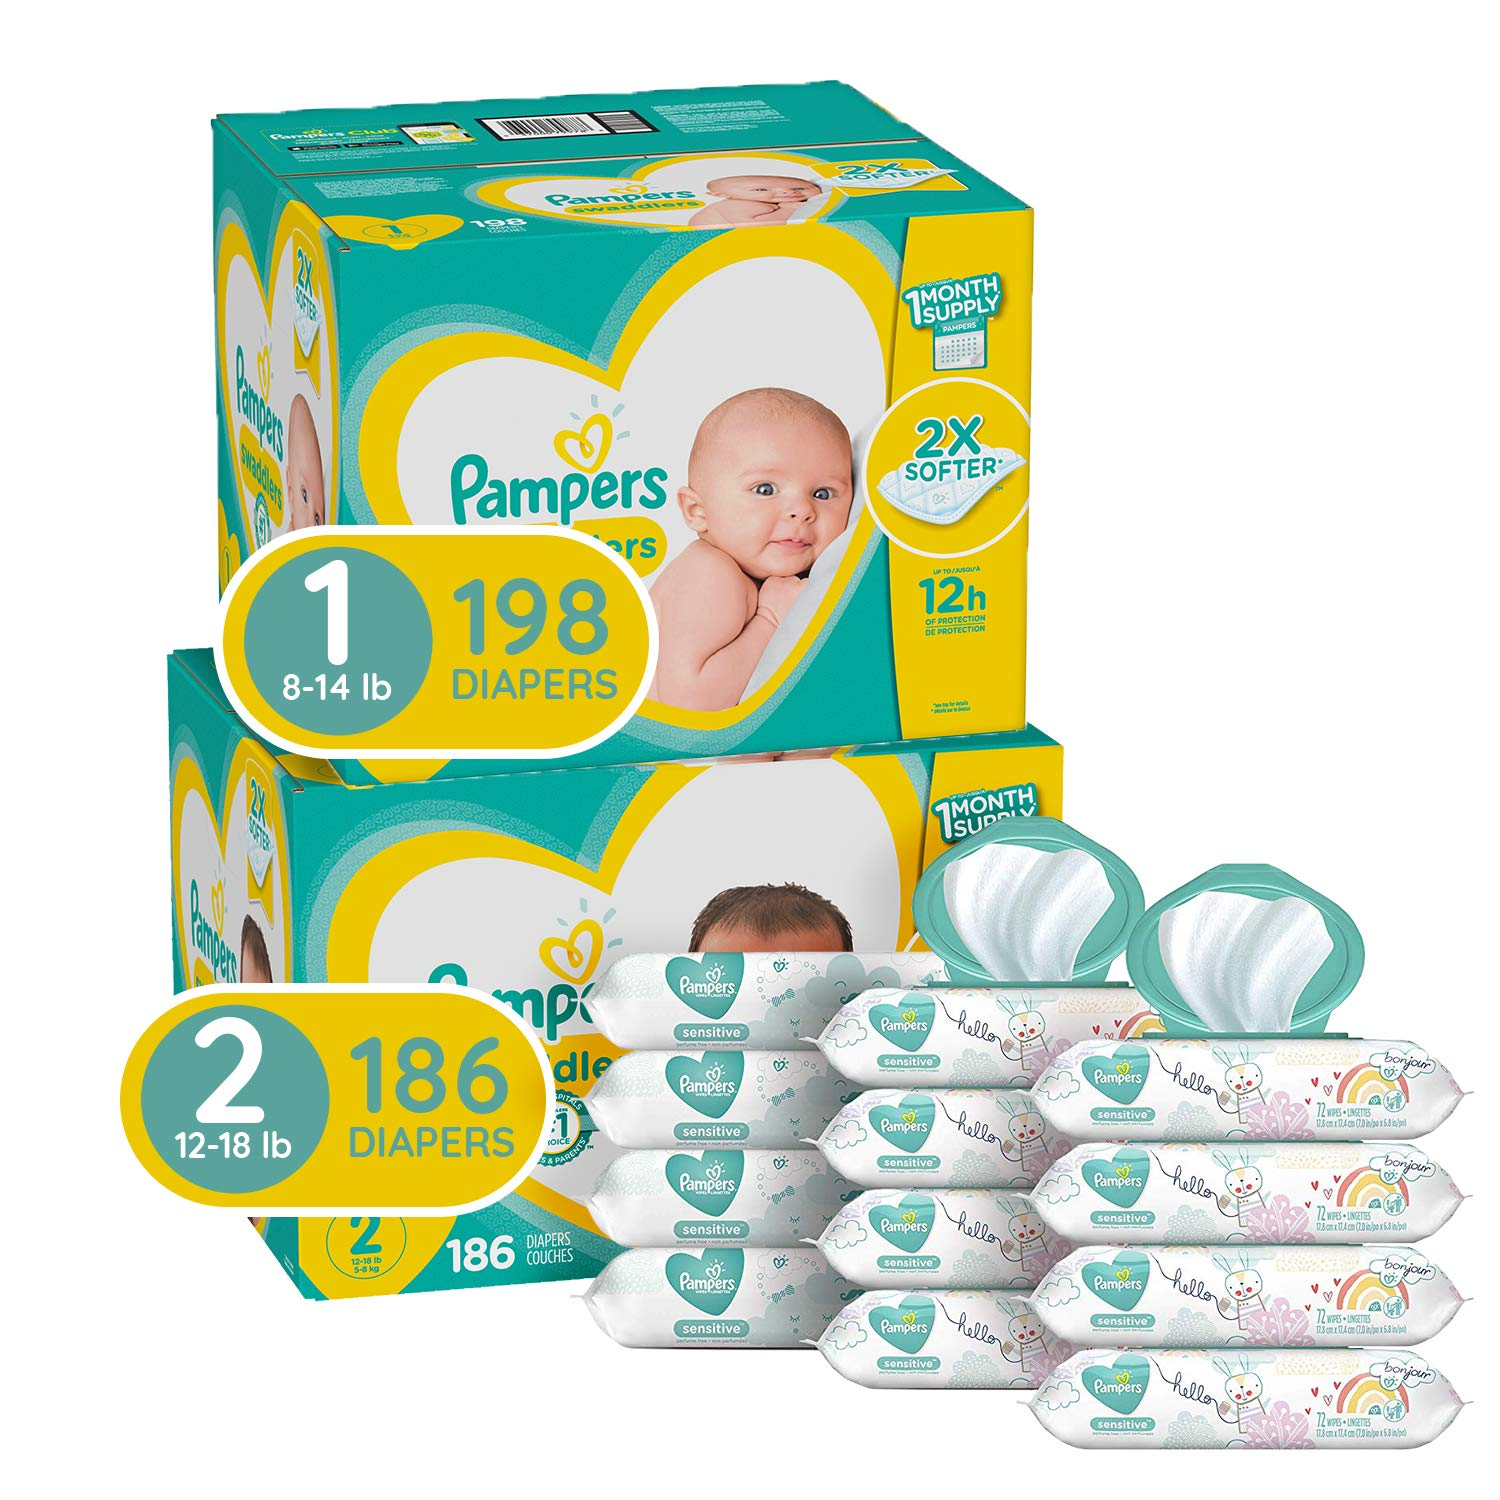 Pampers Baby Diapers and Wipes Starter Kit (2 Month Supply) - Swaddlers Disposable Baby Diapers Sizes 1 (198 Count) & 2, (186 Count) with Sensitive Water-Based Baby Wipes, 12X Pop-Top Packs, 864 Count